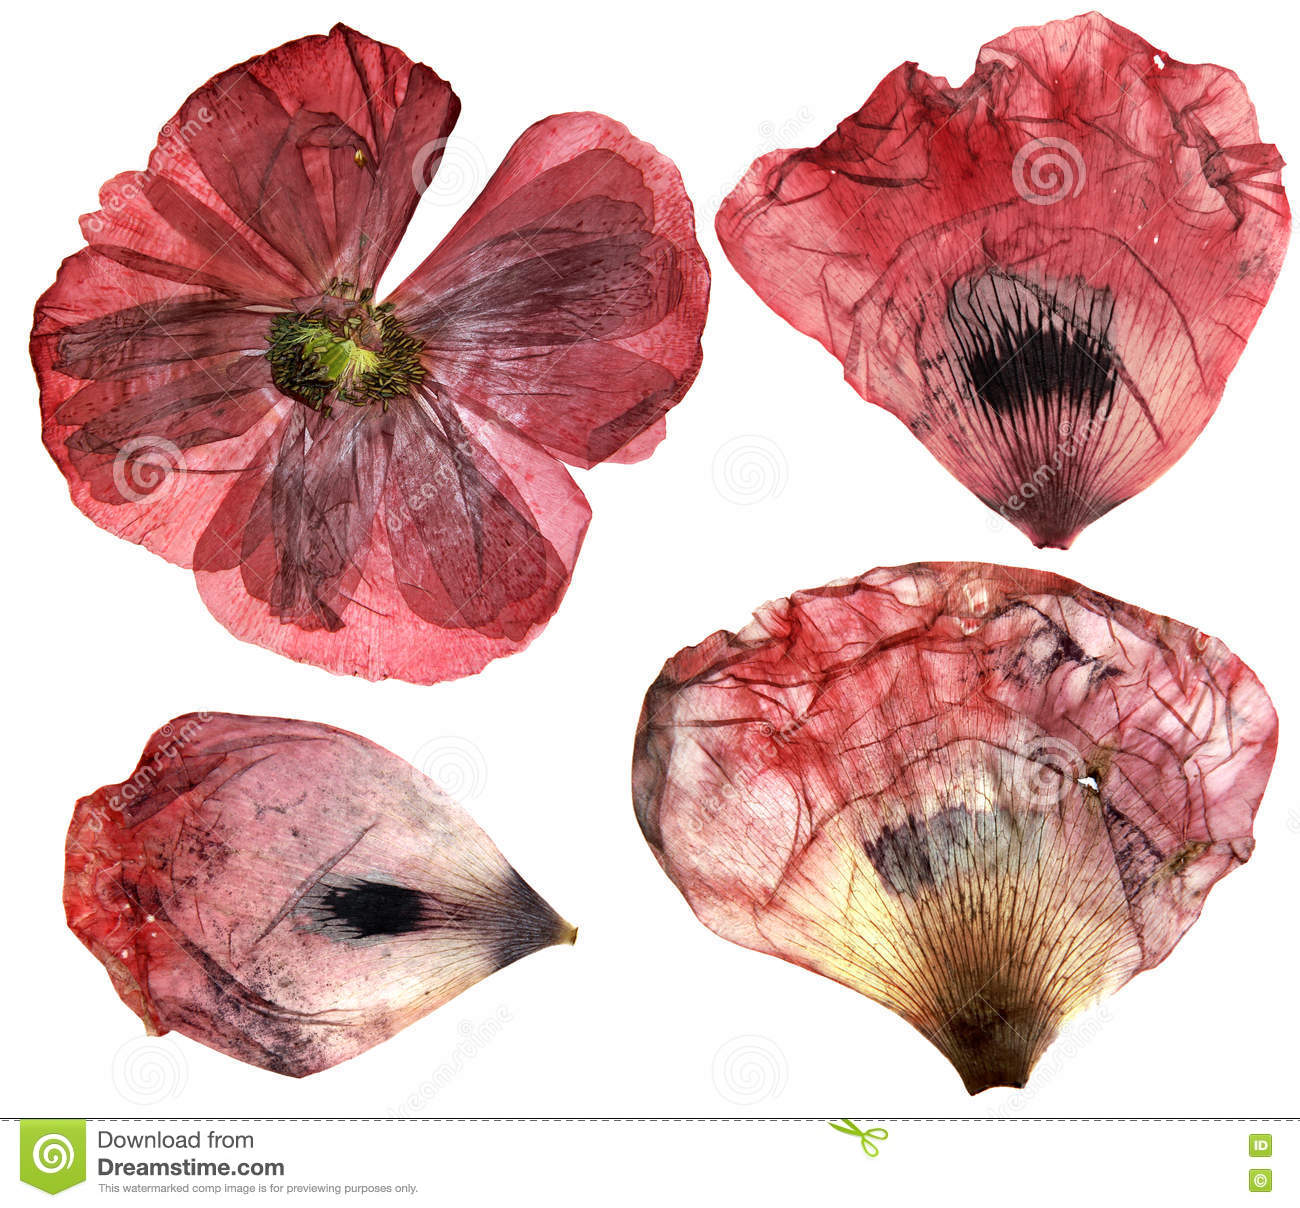 How to scrapbook like poppy - Dry Pressed Poppy Perspective Delicate Flowers And Petals Iso Royalty Free Stock Photo